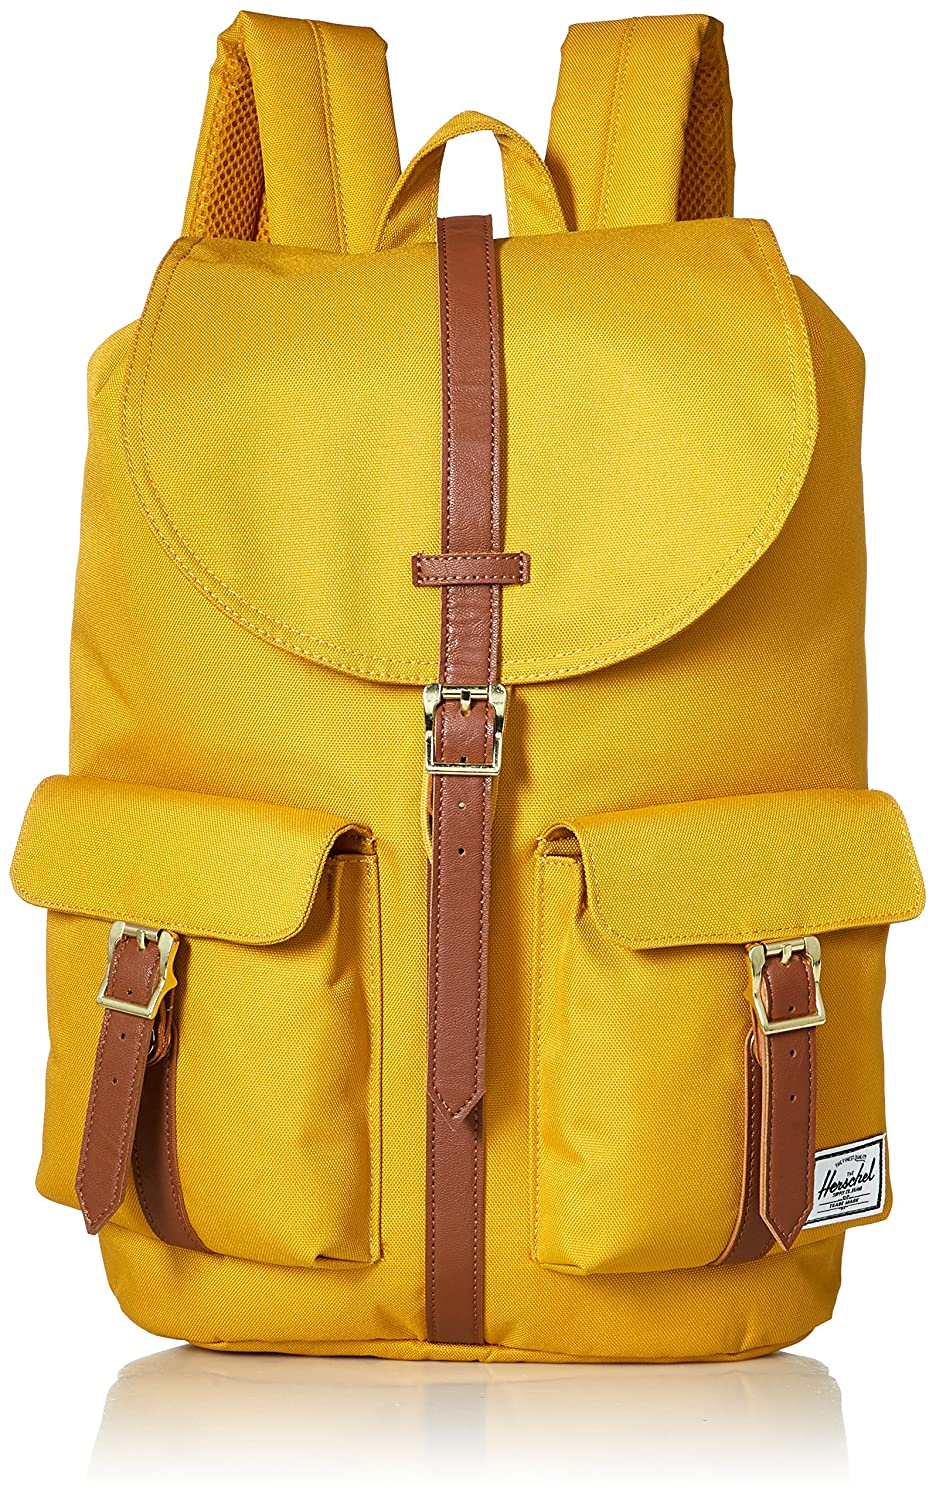 9369ddcc4ef2 Best Herschel Backpack Reviews  5 Top-Rated in March 2019!